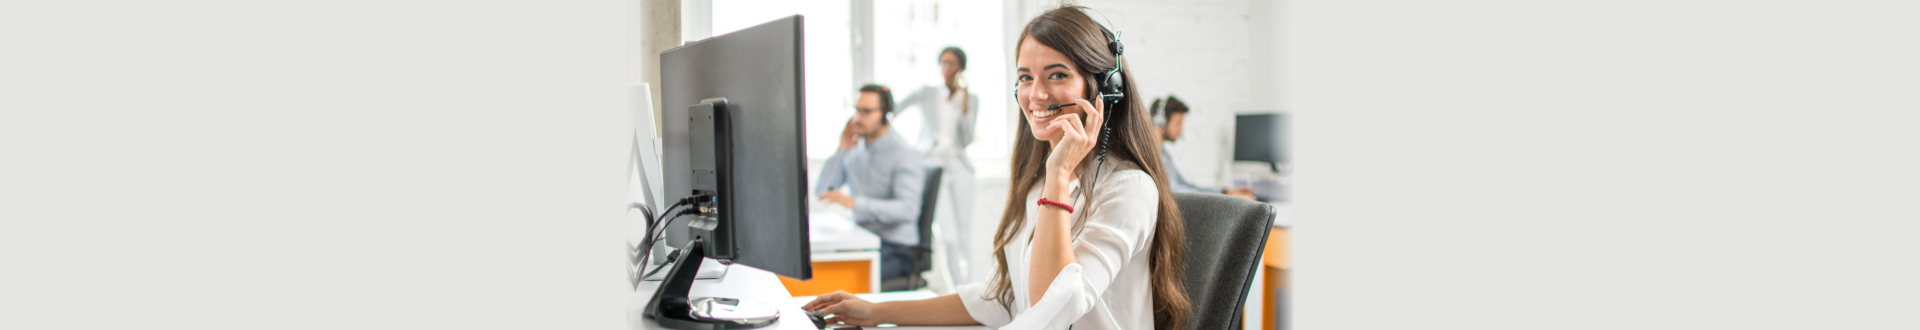 Young friendly operator woman with headsets working